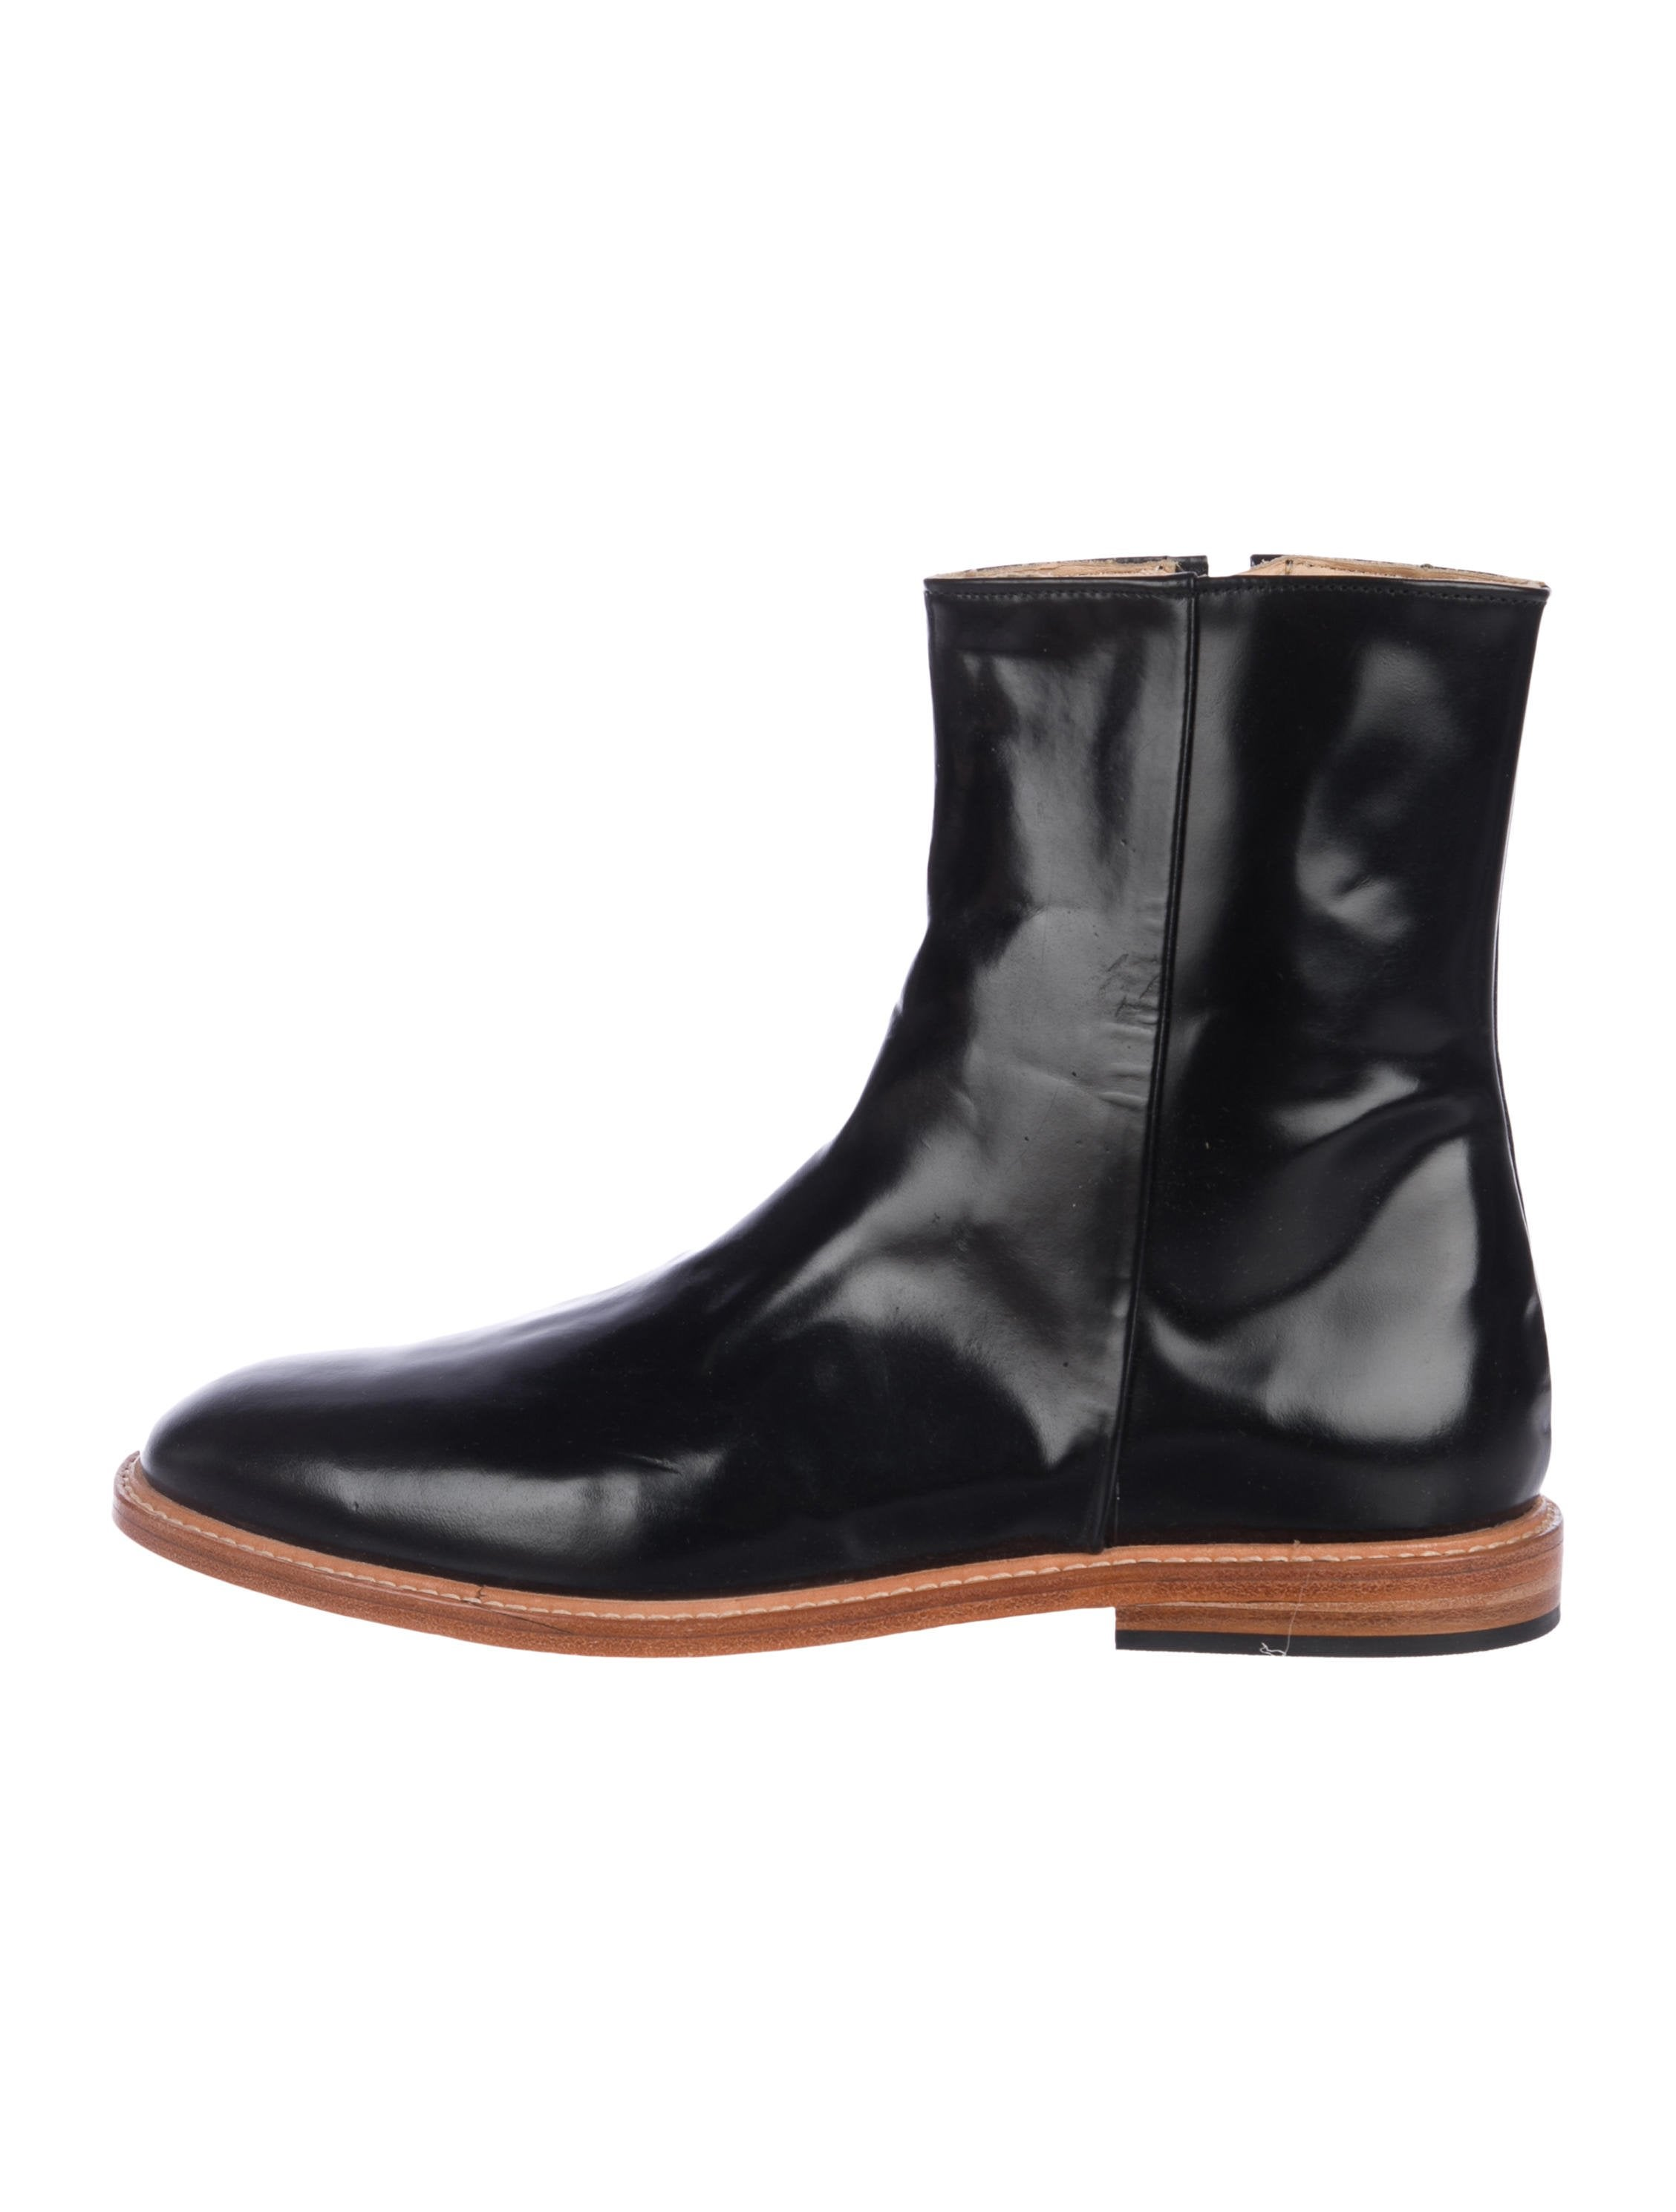 ee0c51c3e74 Dieppa Restrepo Leather Ankle Boots - Shoes - WDR21264